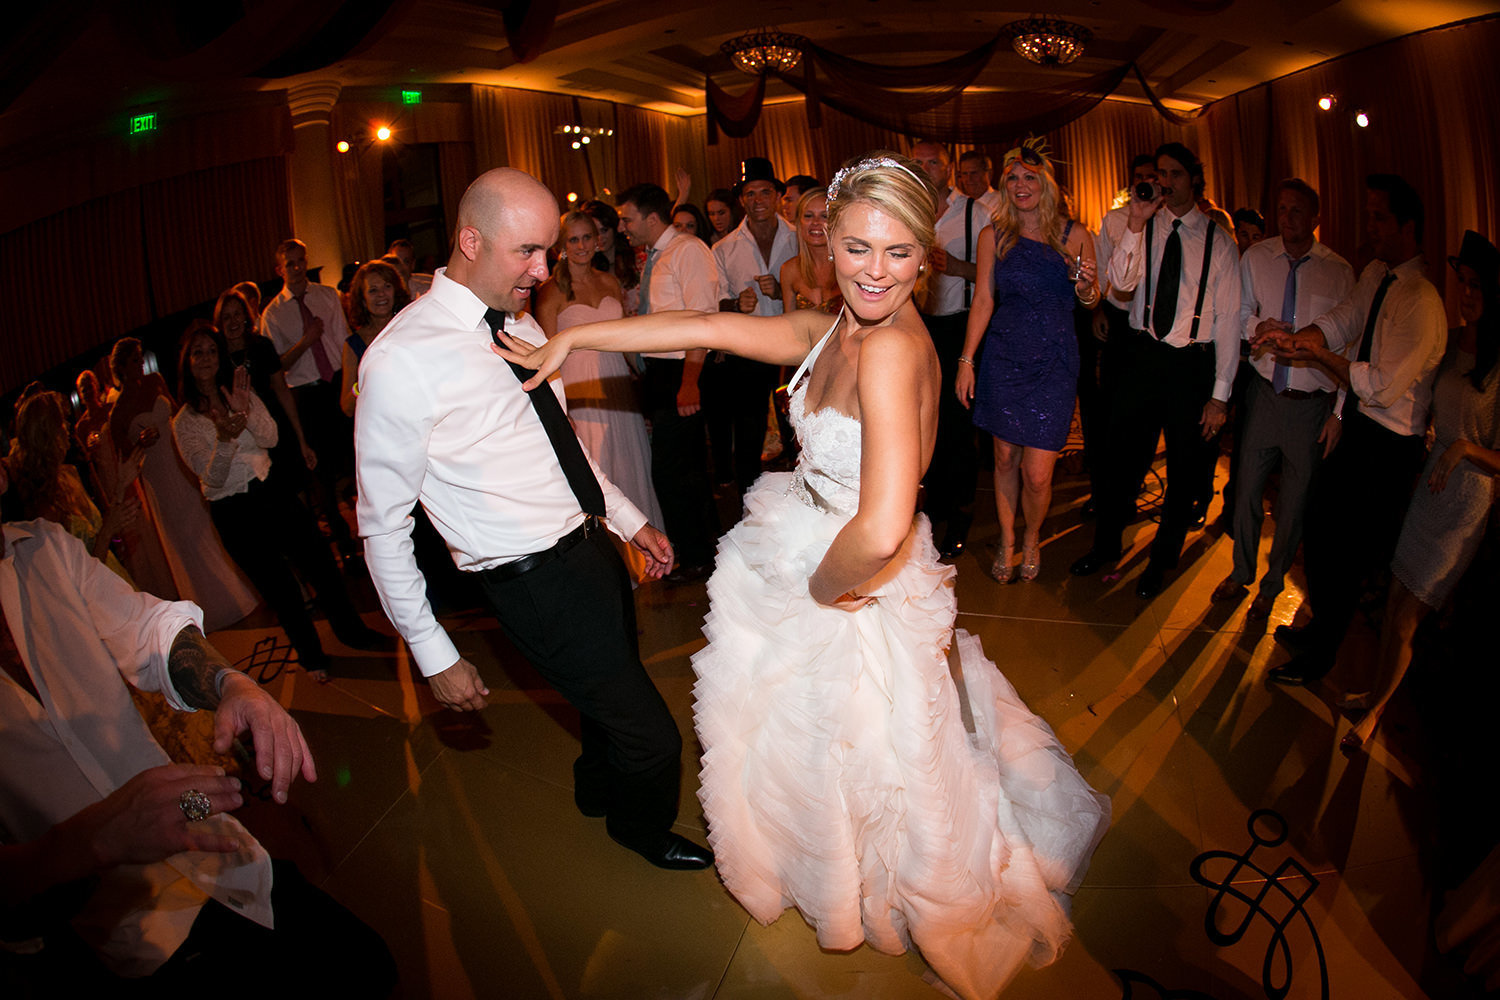 We  live for the hilarious moments between the bride and groom